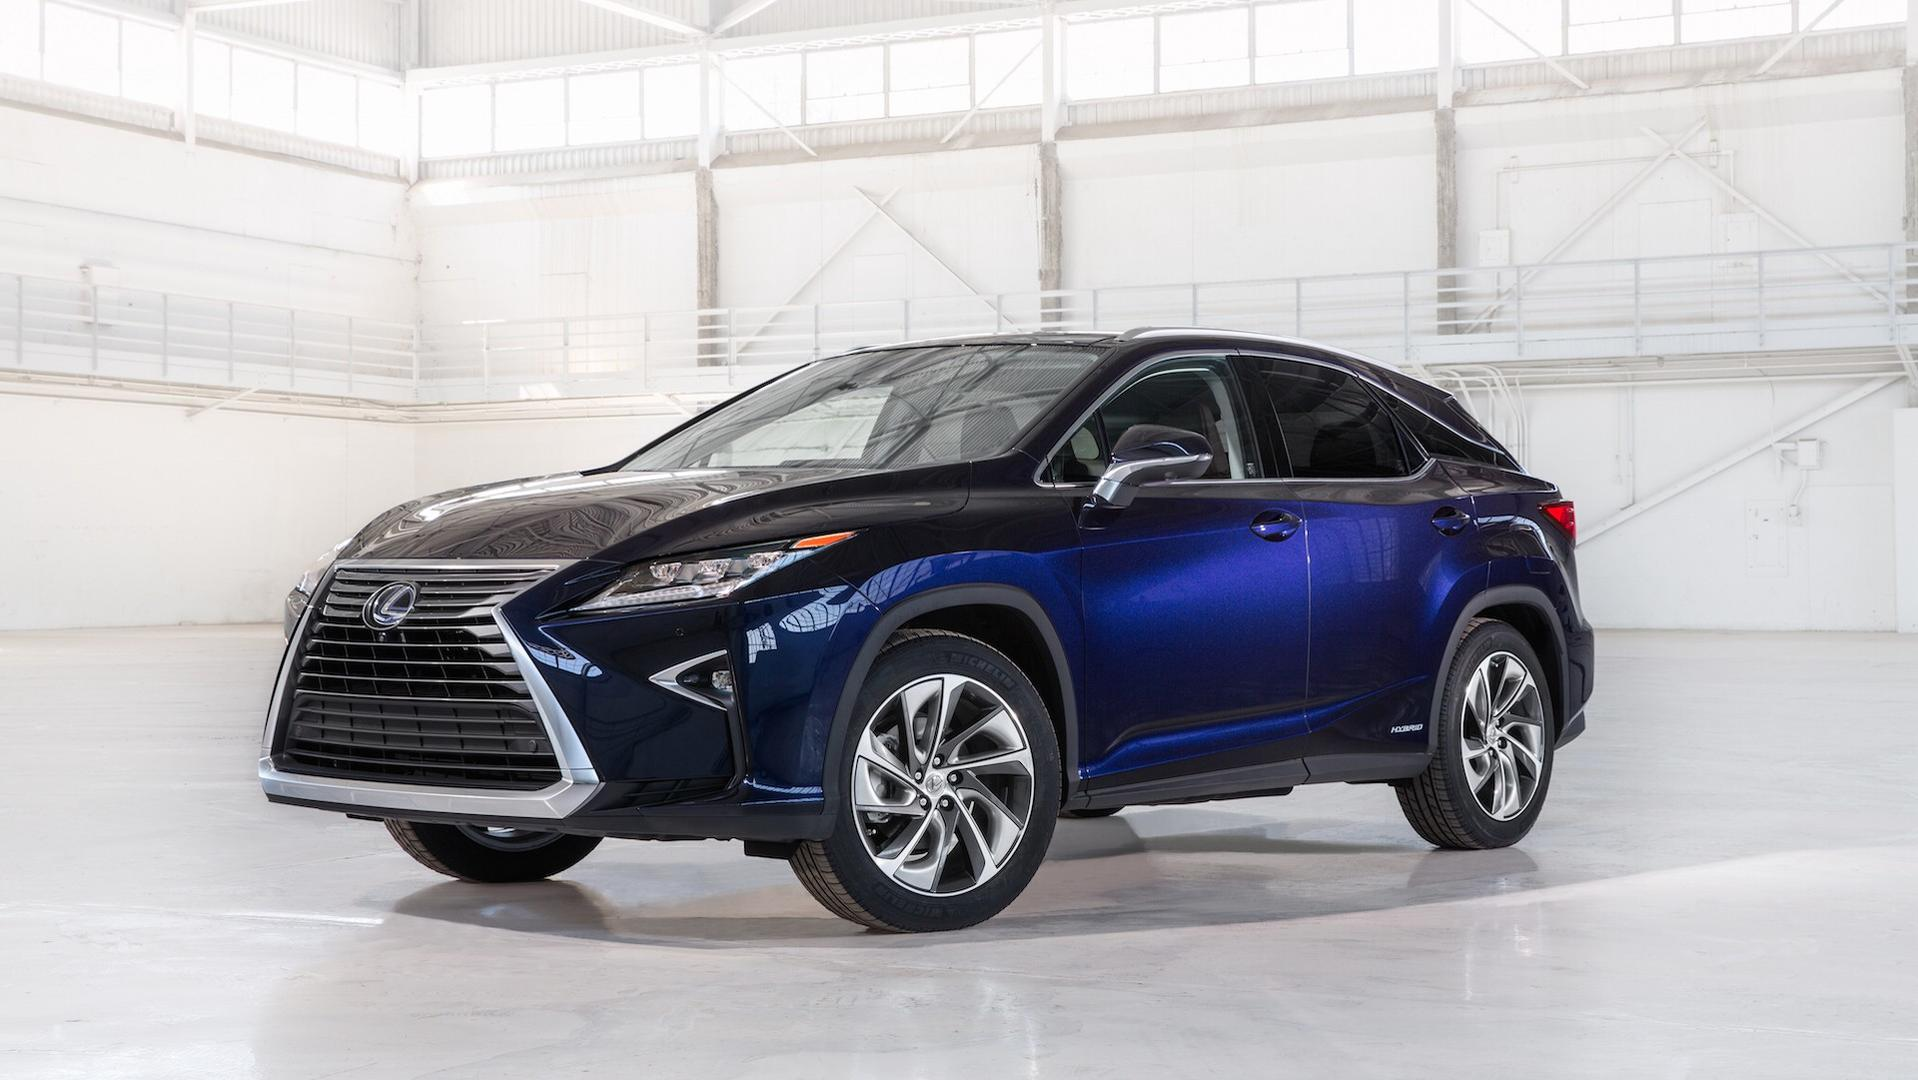 2018 Lexus RX 450h: News, Changes, Price >> 2018 Lexus Rx 450h Coming With Massive 7 340 Price Cut